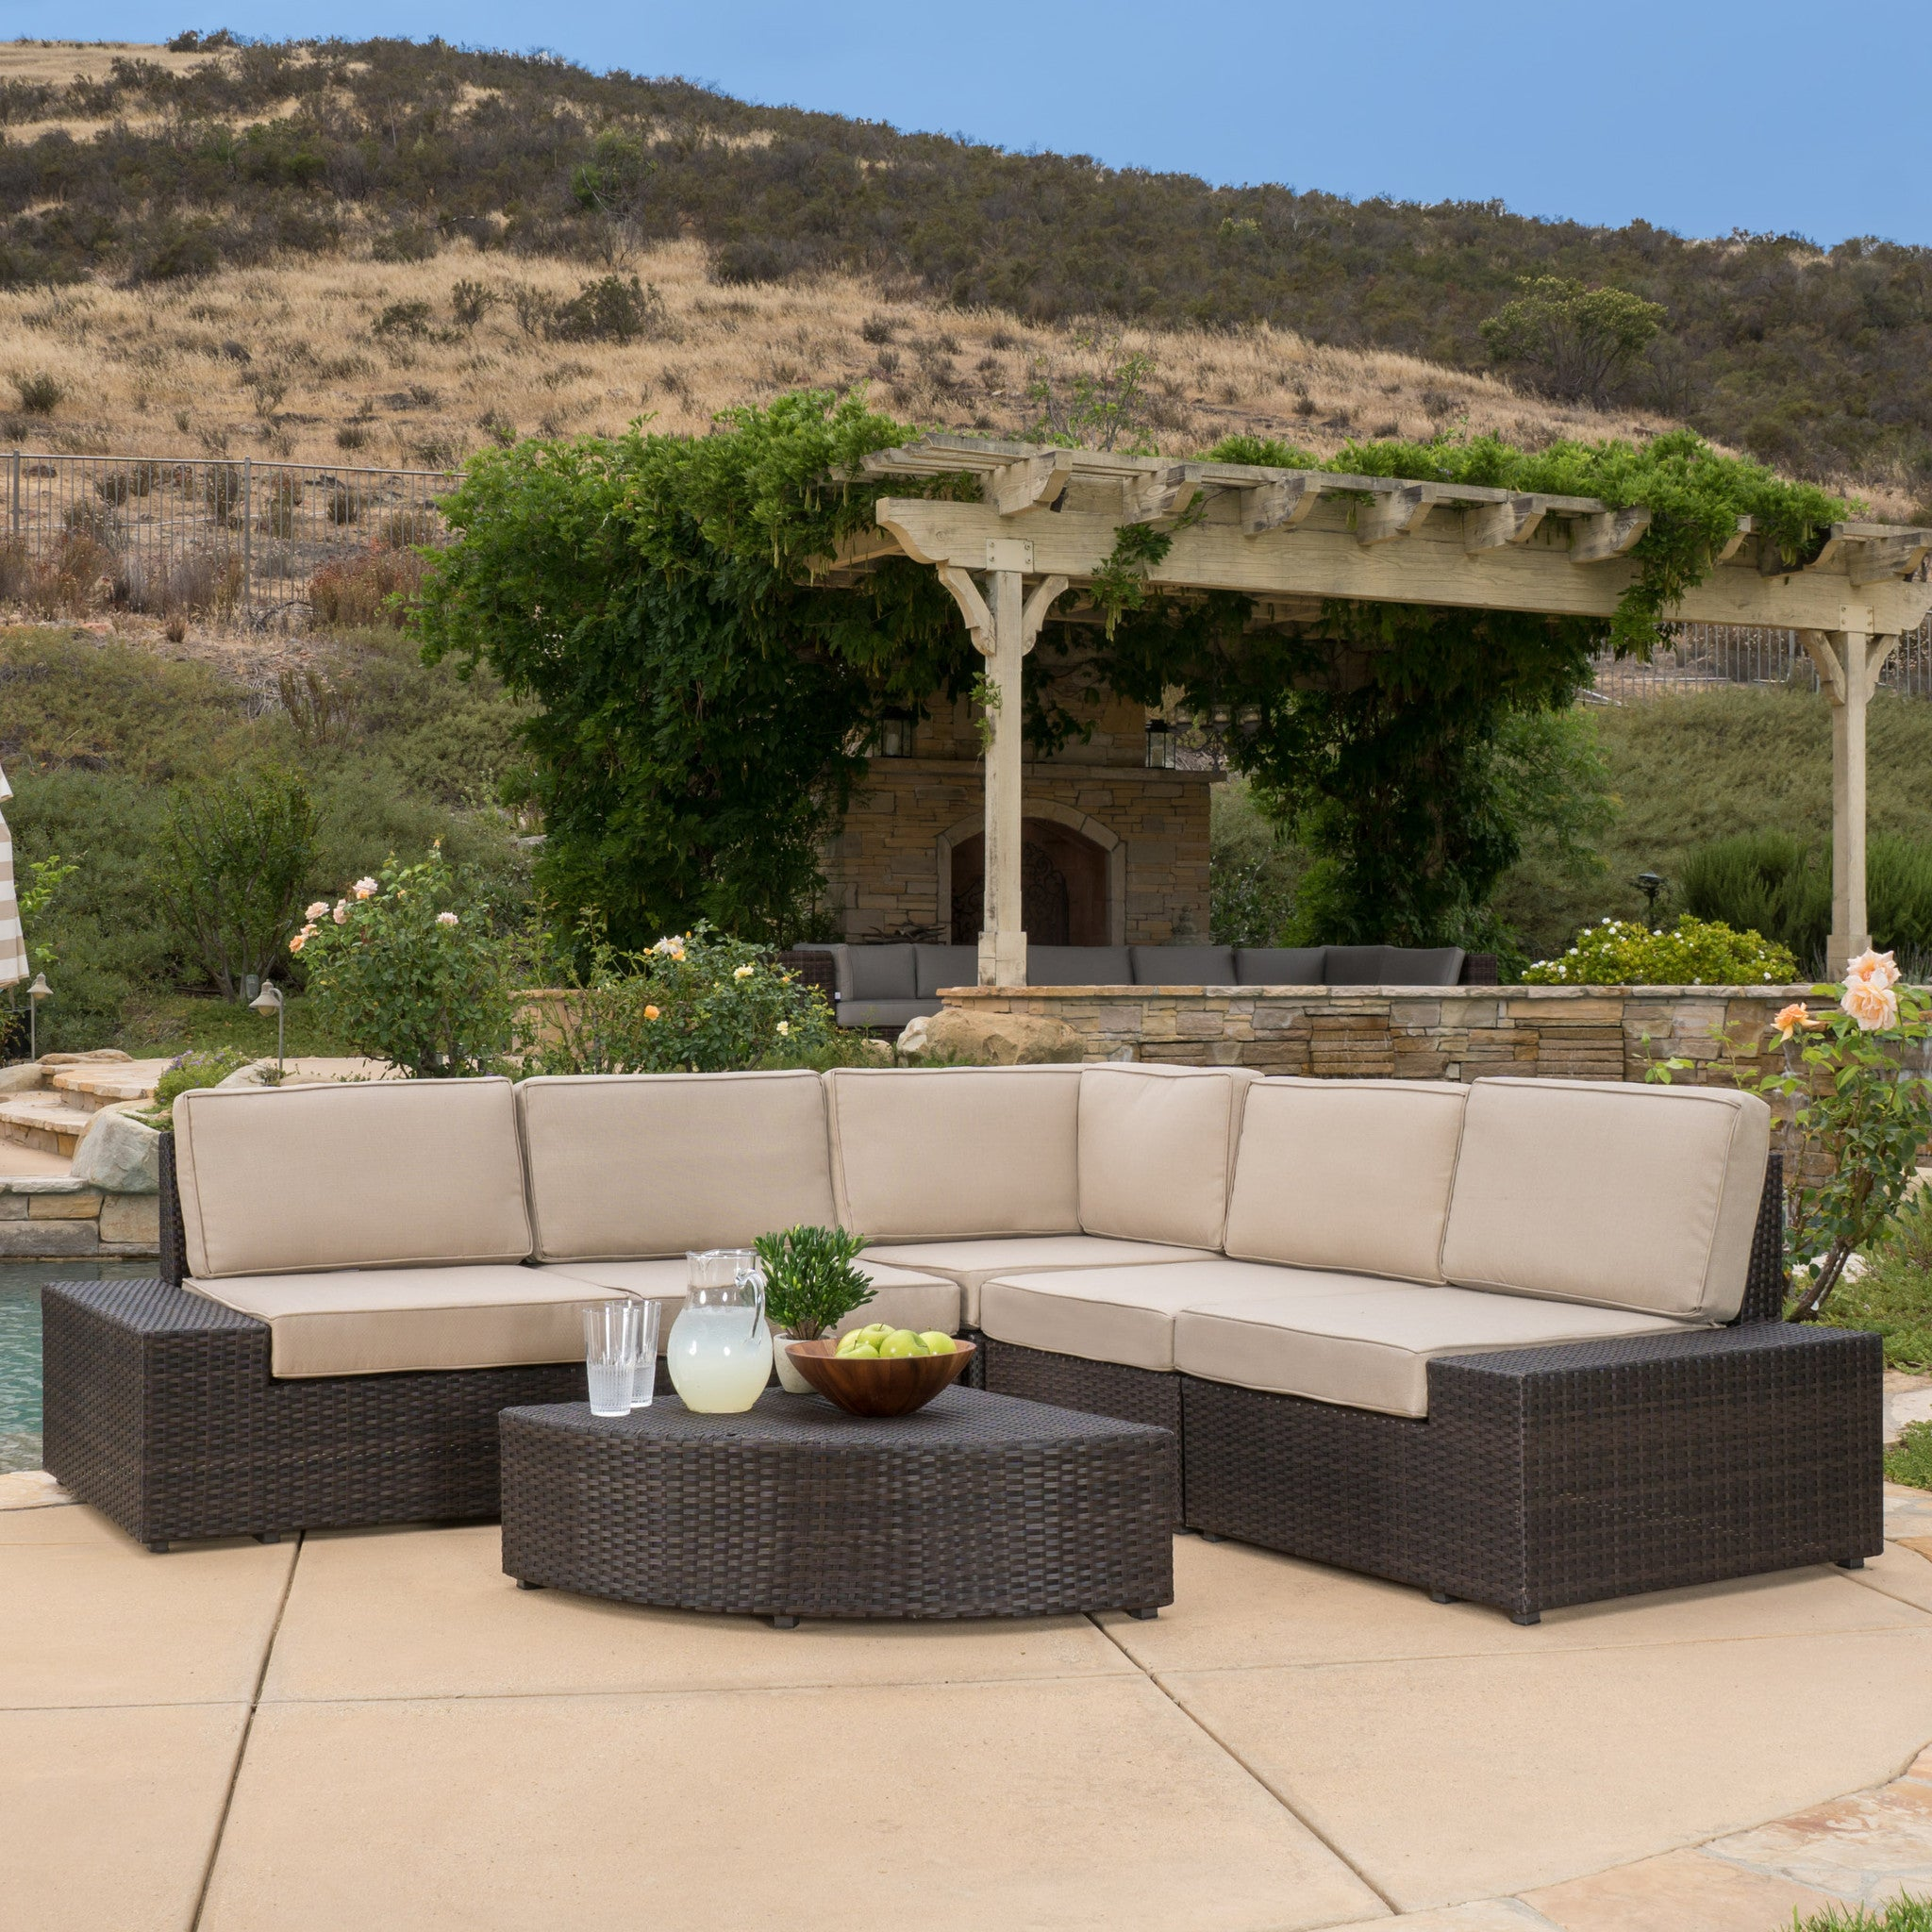 Reddington Outdoor Brown Wicker Sectional Seating Set foto